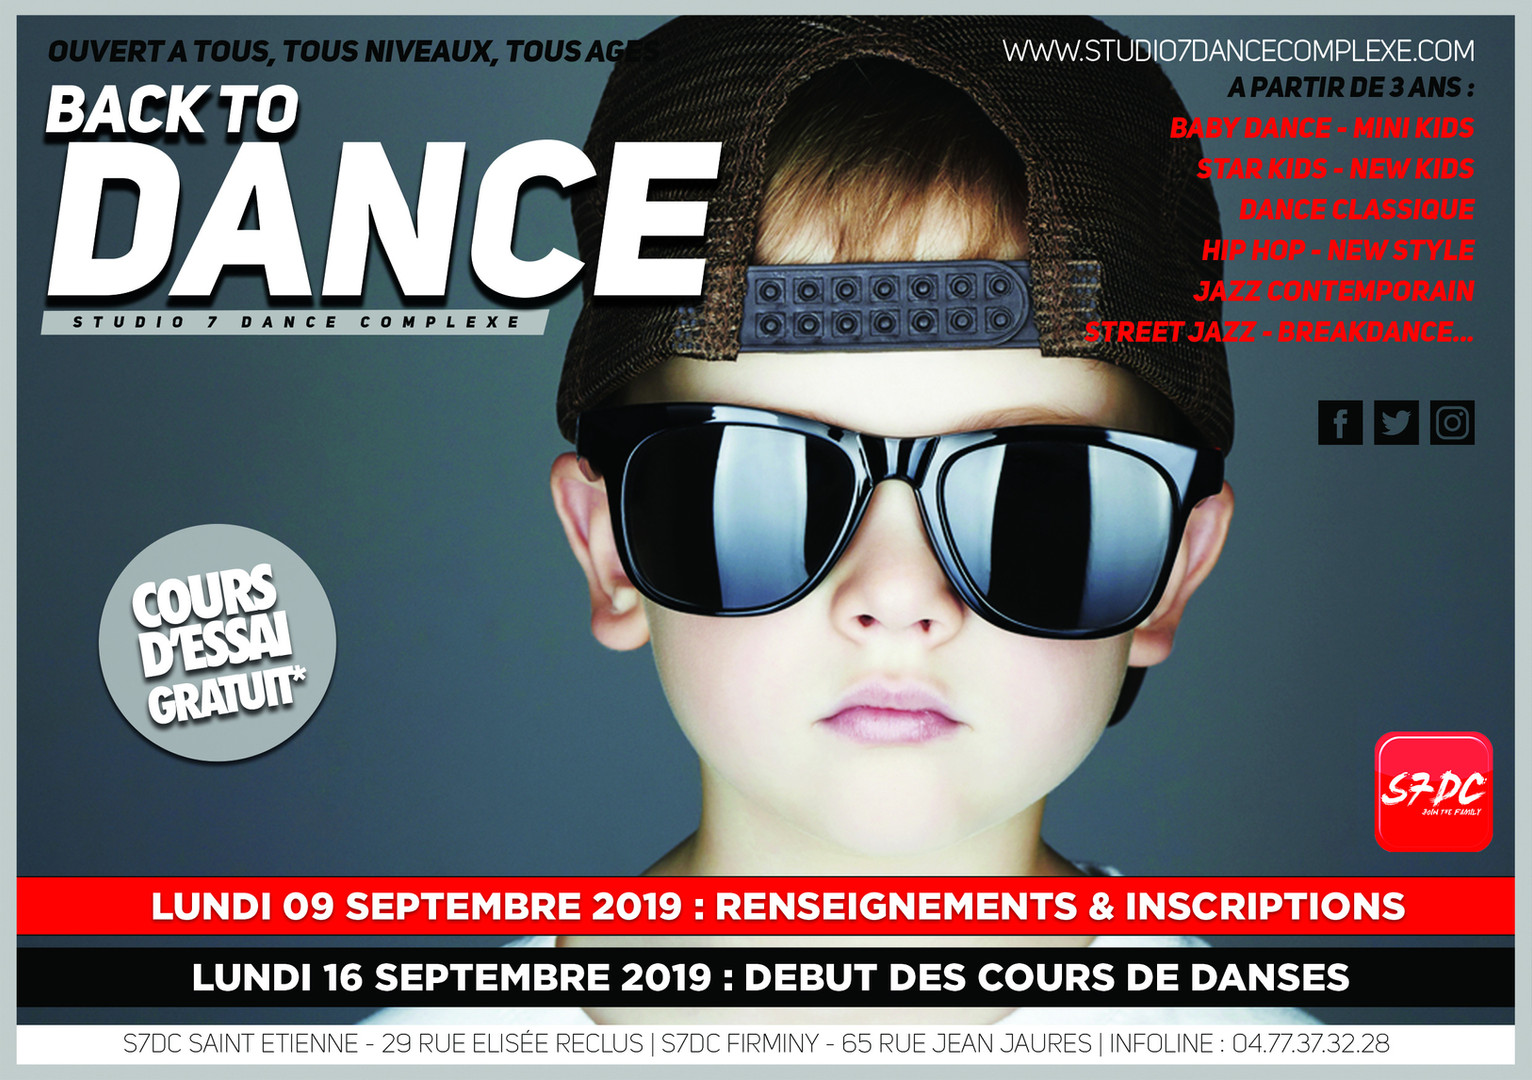 BACK TO DANCE 5 - KIDS LUNETTES CASQUETT